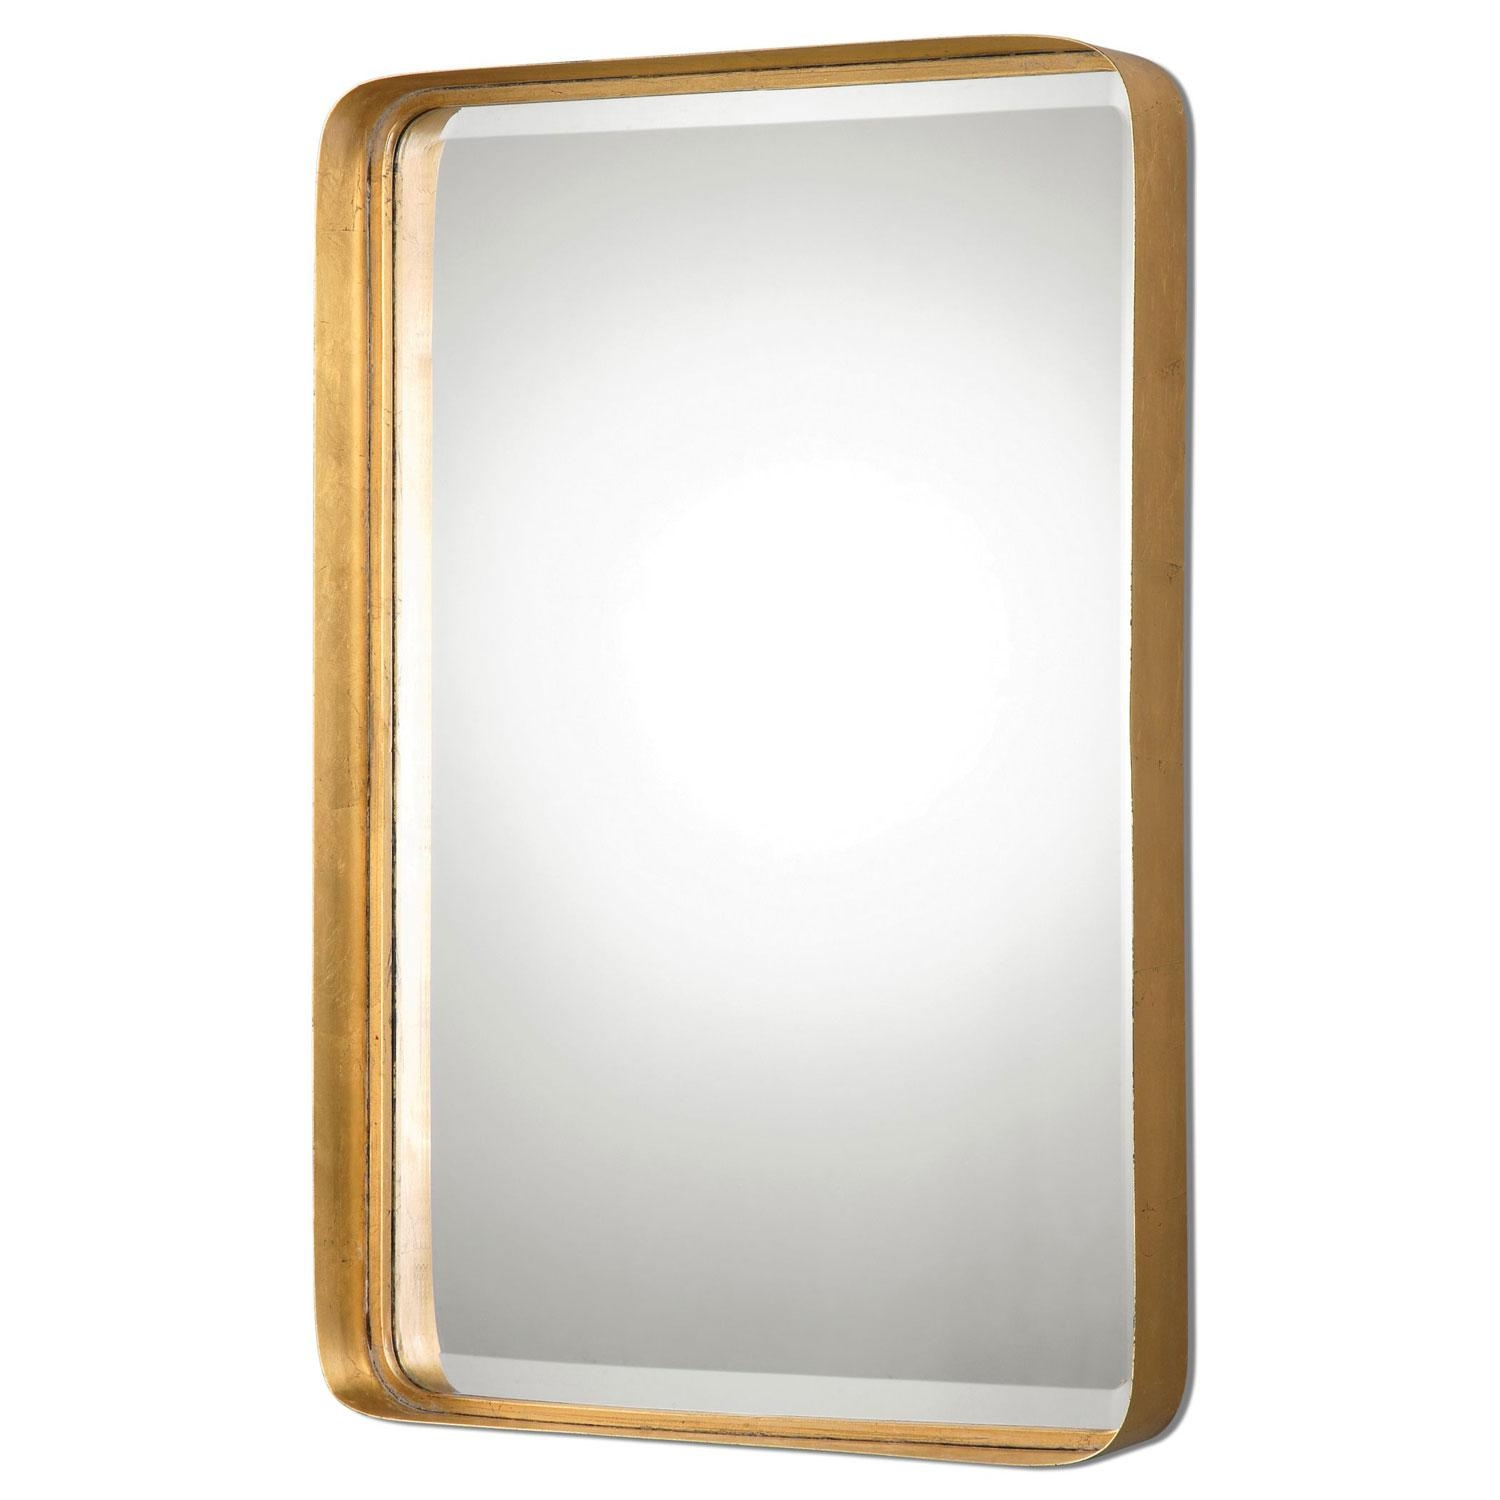 Gold Mirrors | Bellacor With Regard To Gold Arch Mirror (Image 8 of 20)